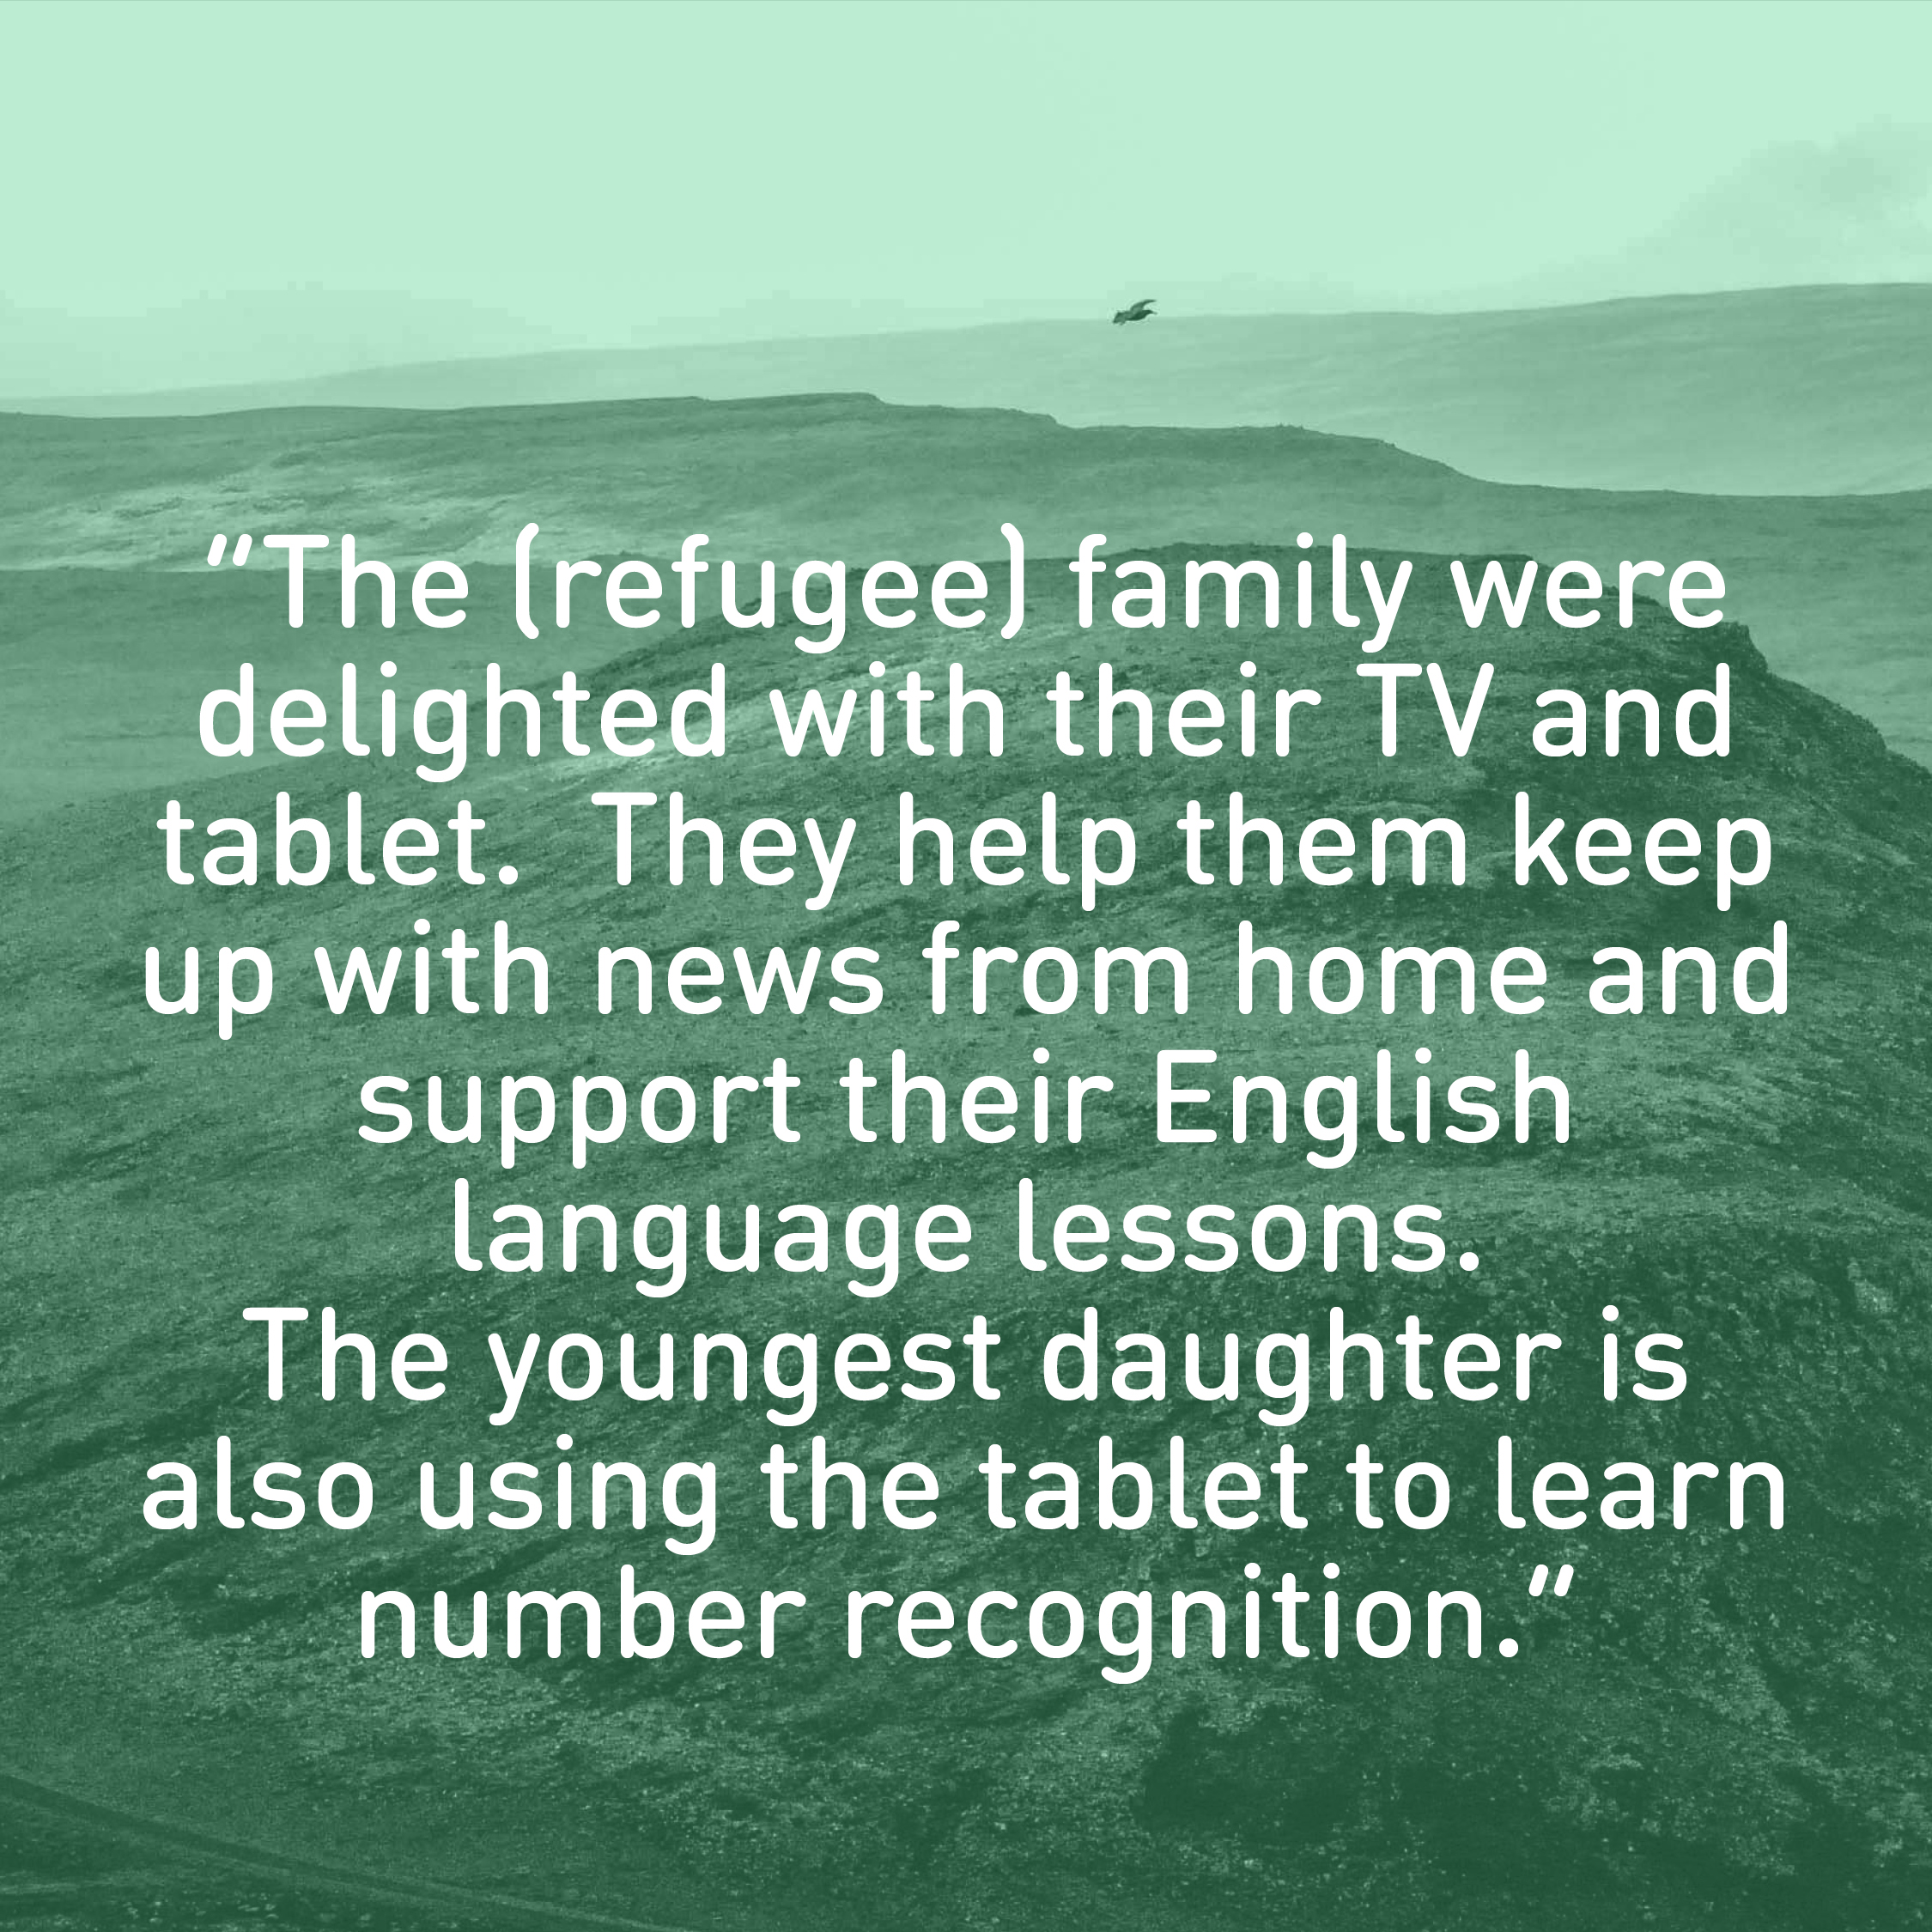 """The (refugee) family were delighted with their TV and tablet.  They help them keep up with news from home and support their English  language lessons.   The youngest daughter is also using the tablet to learn number recognition."""